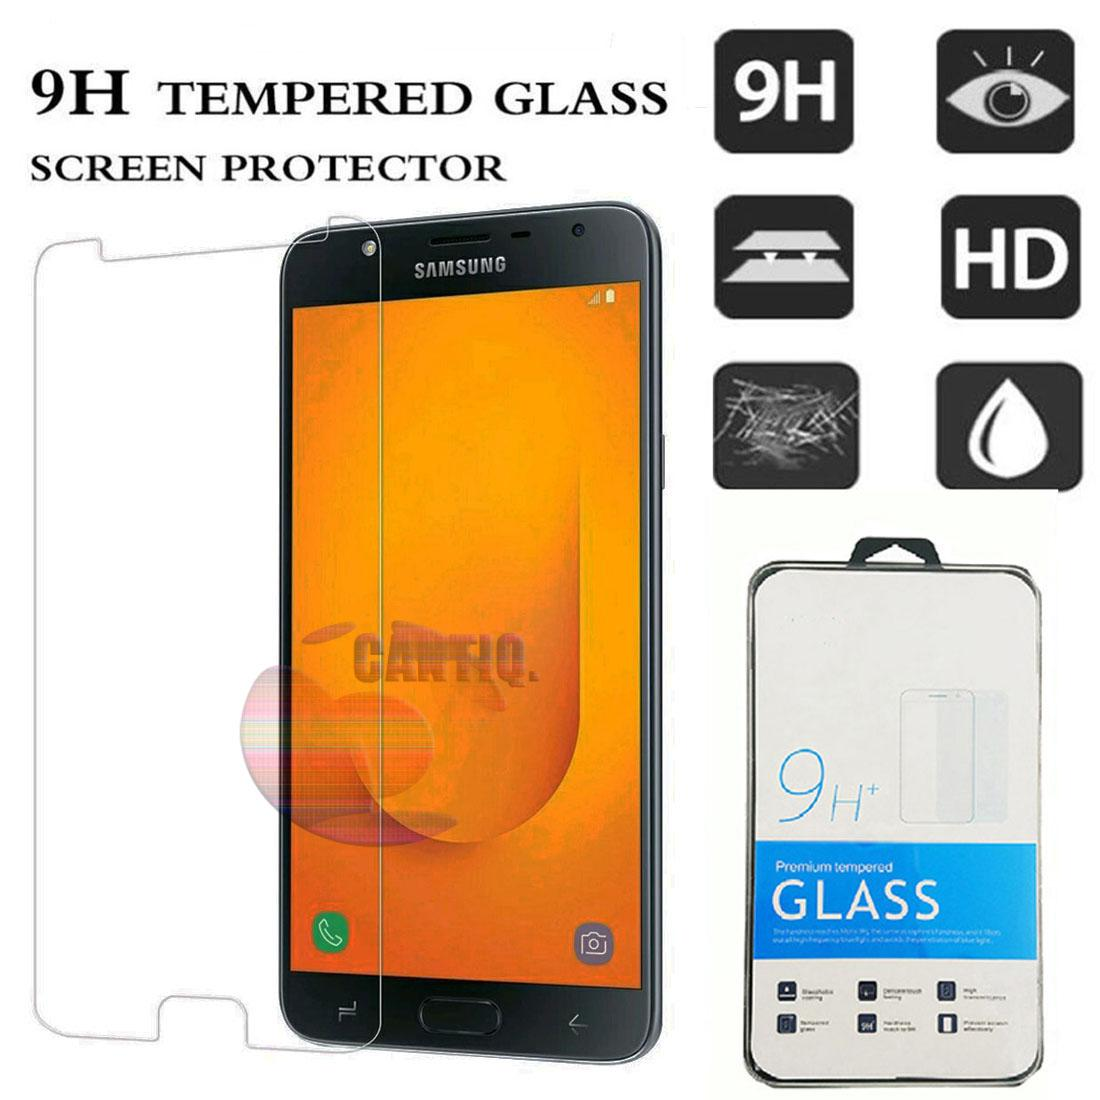 Icantiq Temper Glass Samsung Galaxy J7 Duo Ukuran 5.5 Inch Tempered Glass Samsung J7 Duo Anti